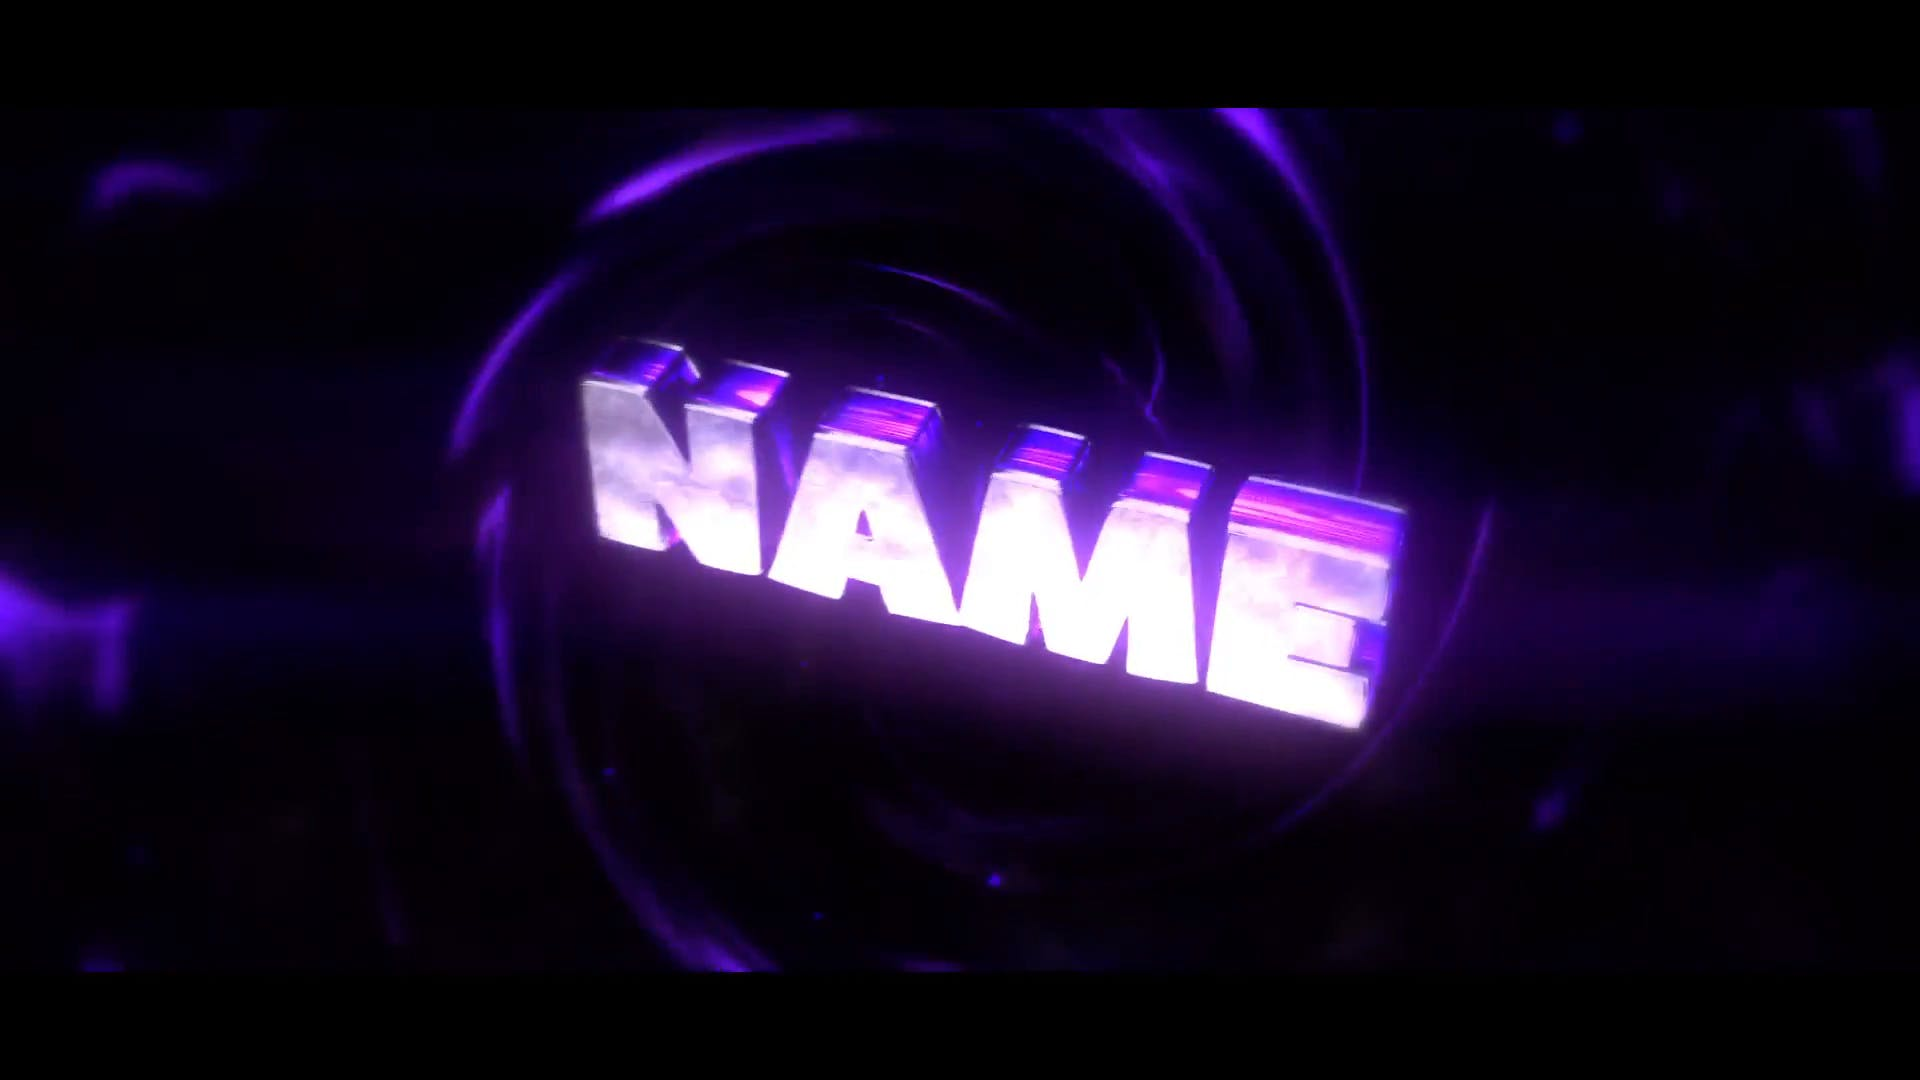 Purple Swirls Cinema 4D After Effects Intro Template FREE DOWNLOAD